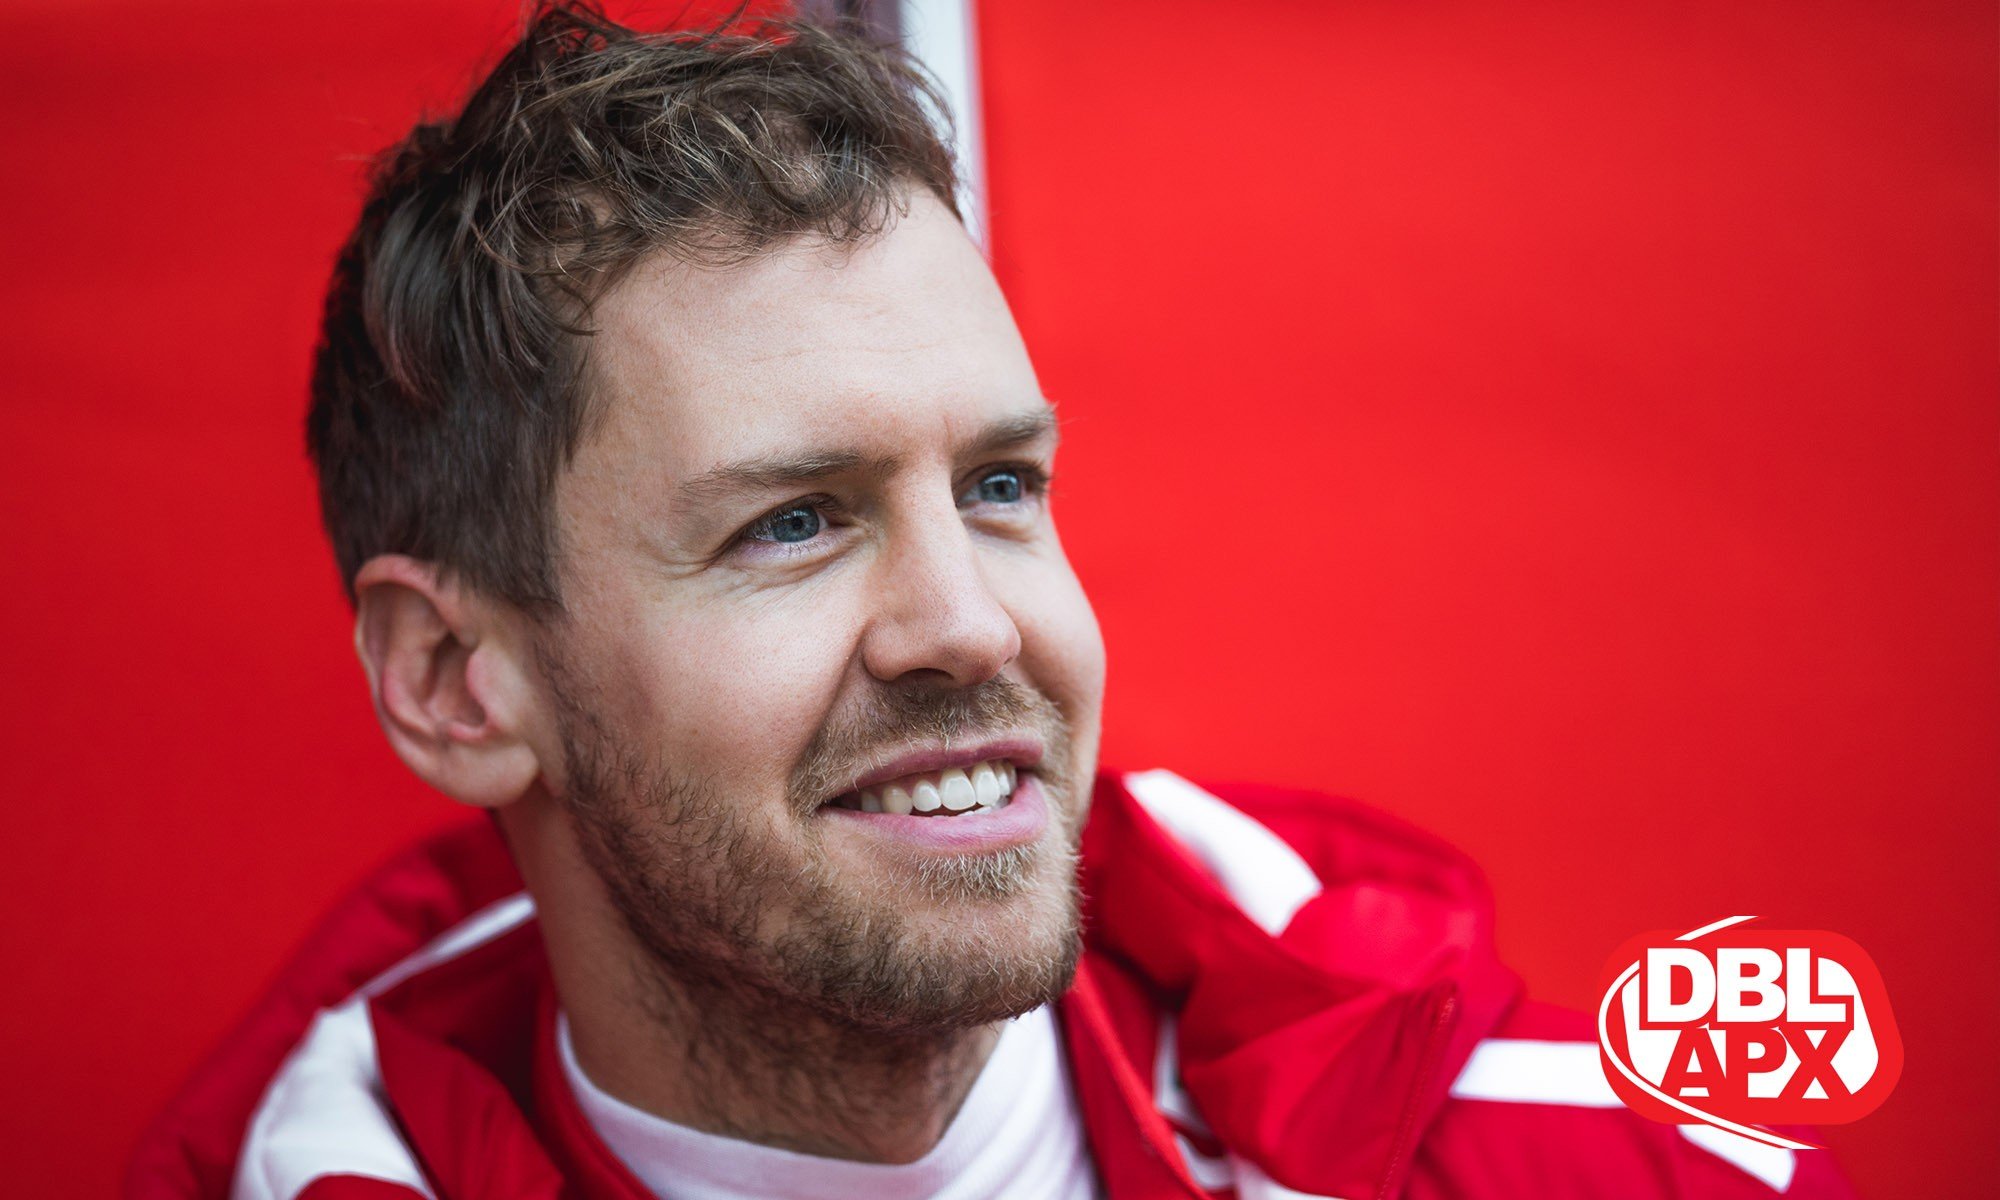 Vettel will enjoy some home ground support